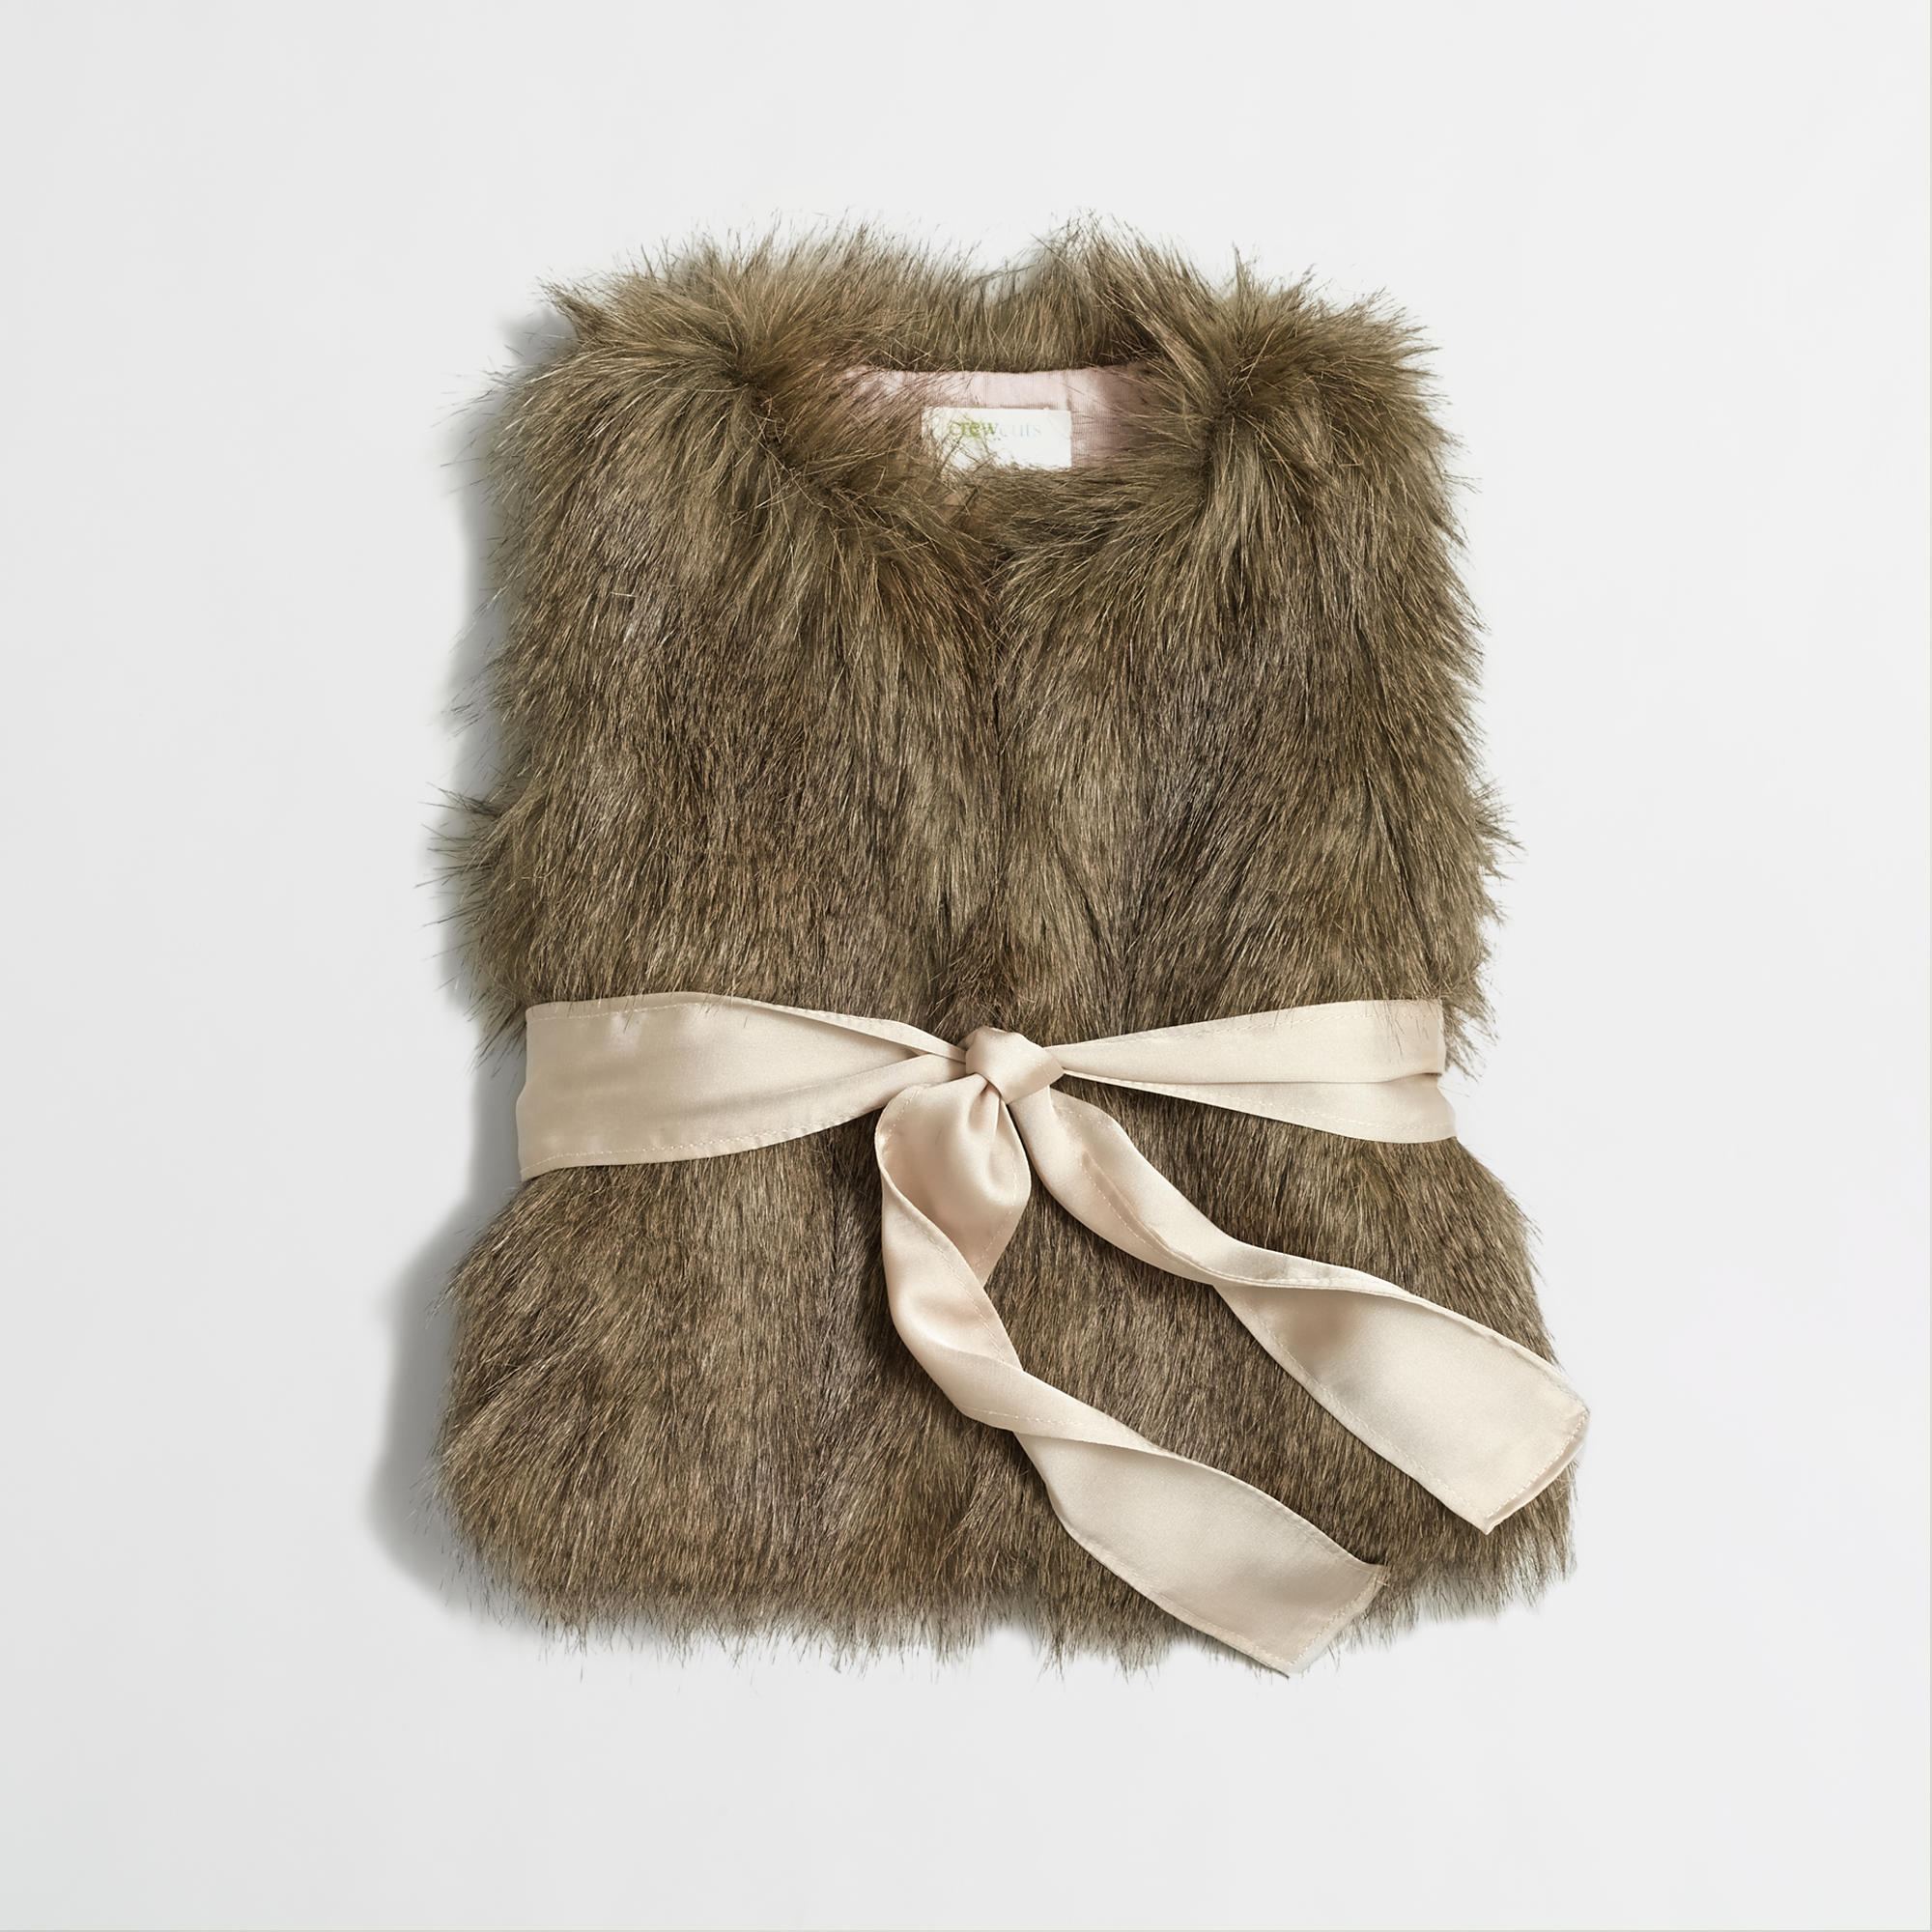 Find great deals on eBay for kids faux fur vest. Shop with confidence.